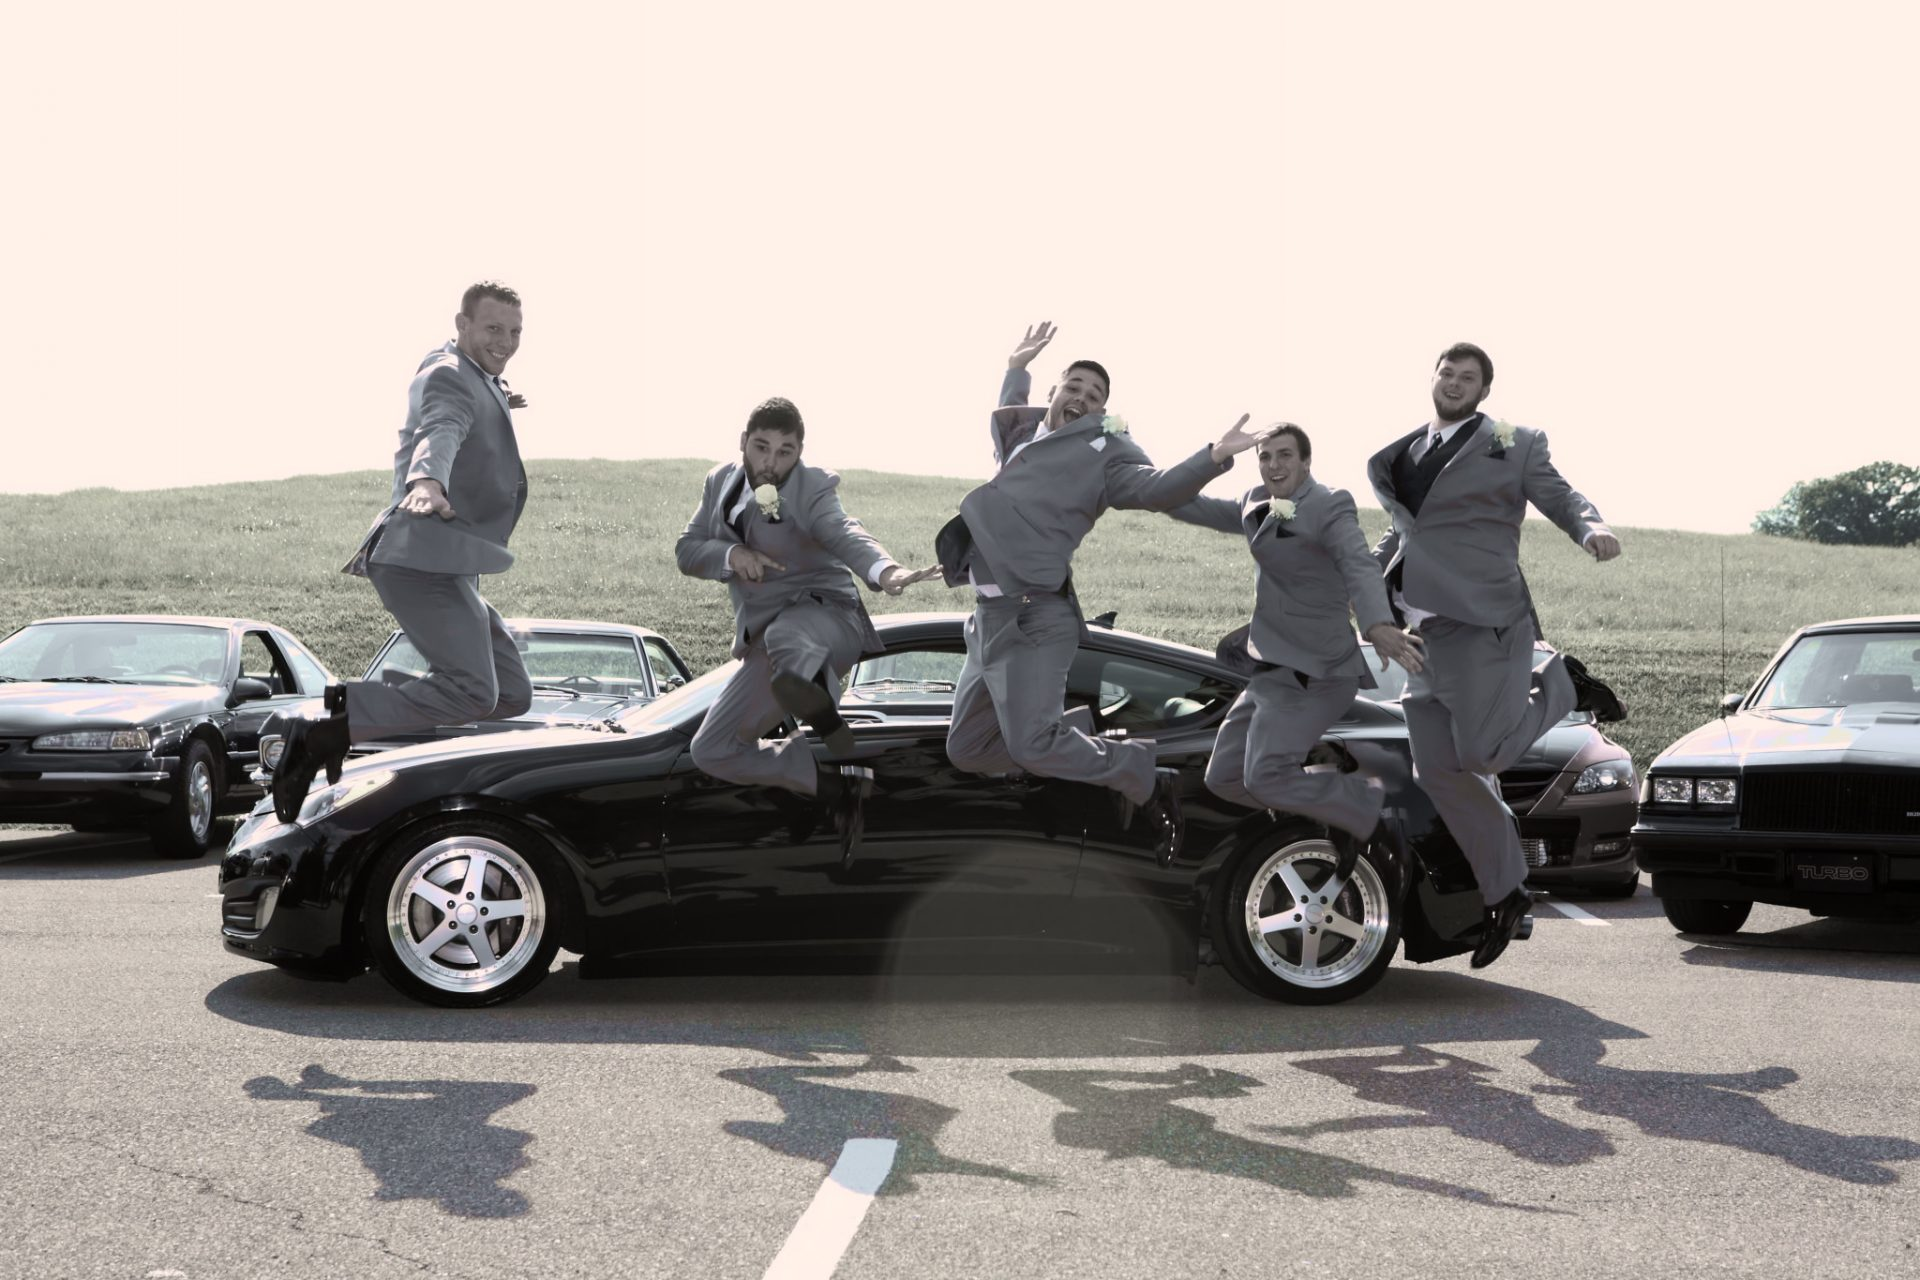 groomsmen jumping by car in parking lot